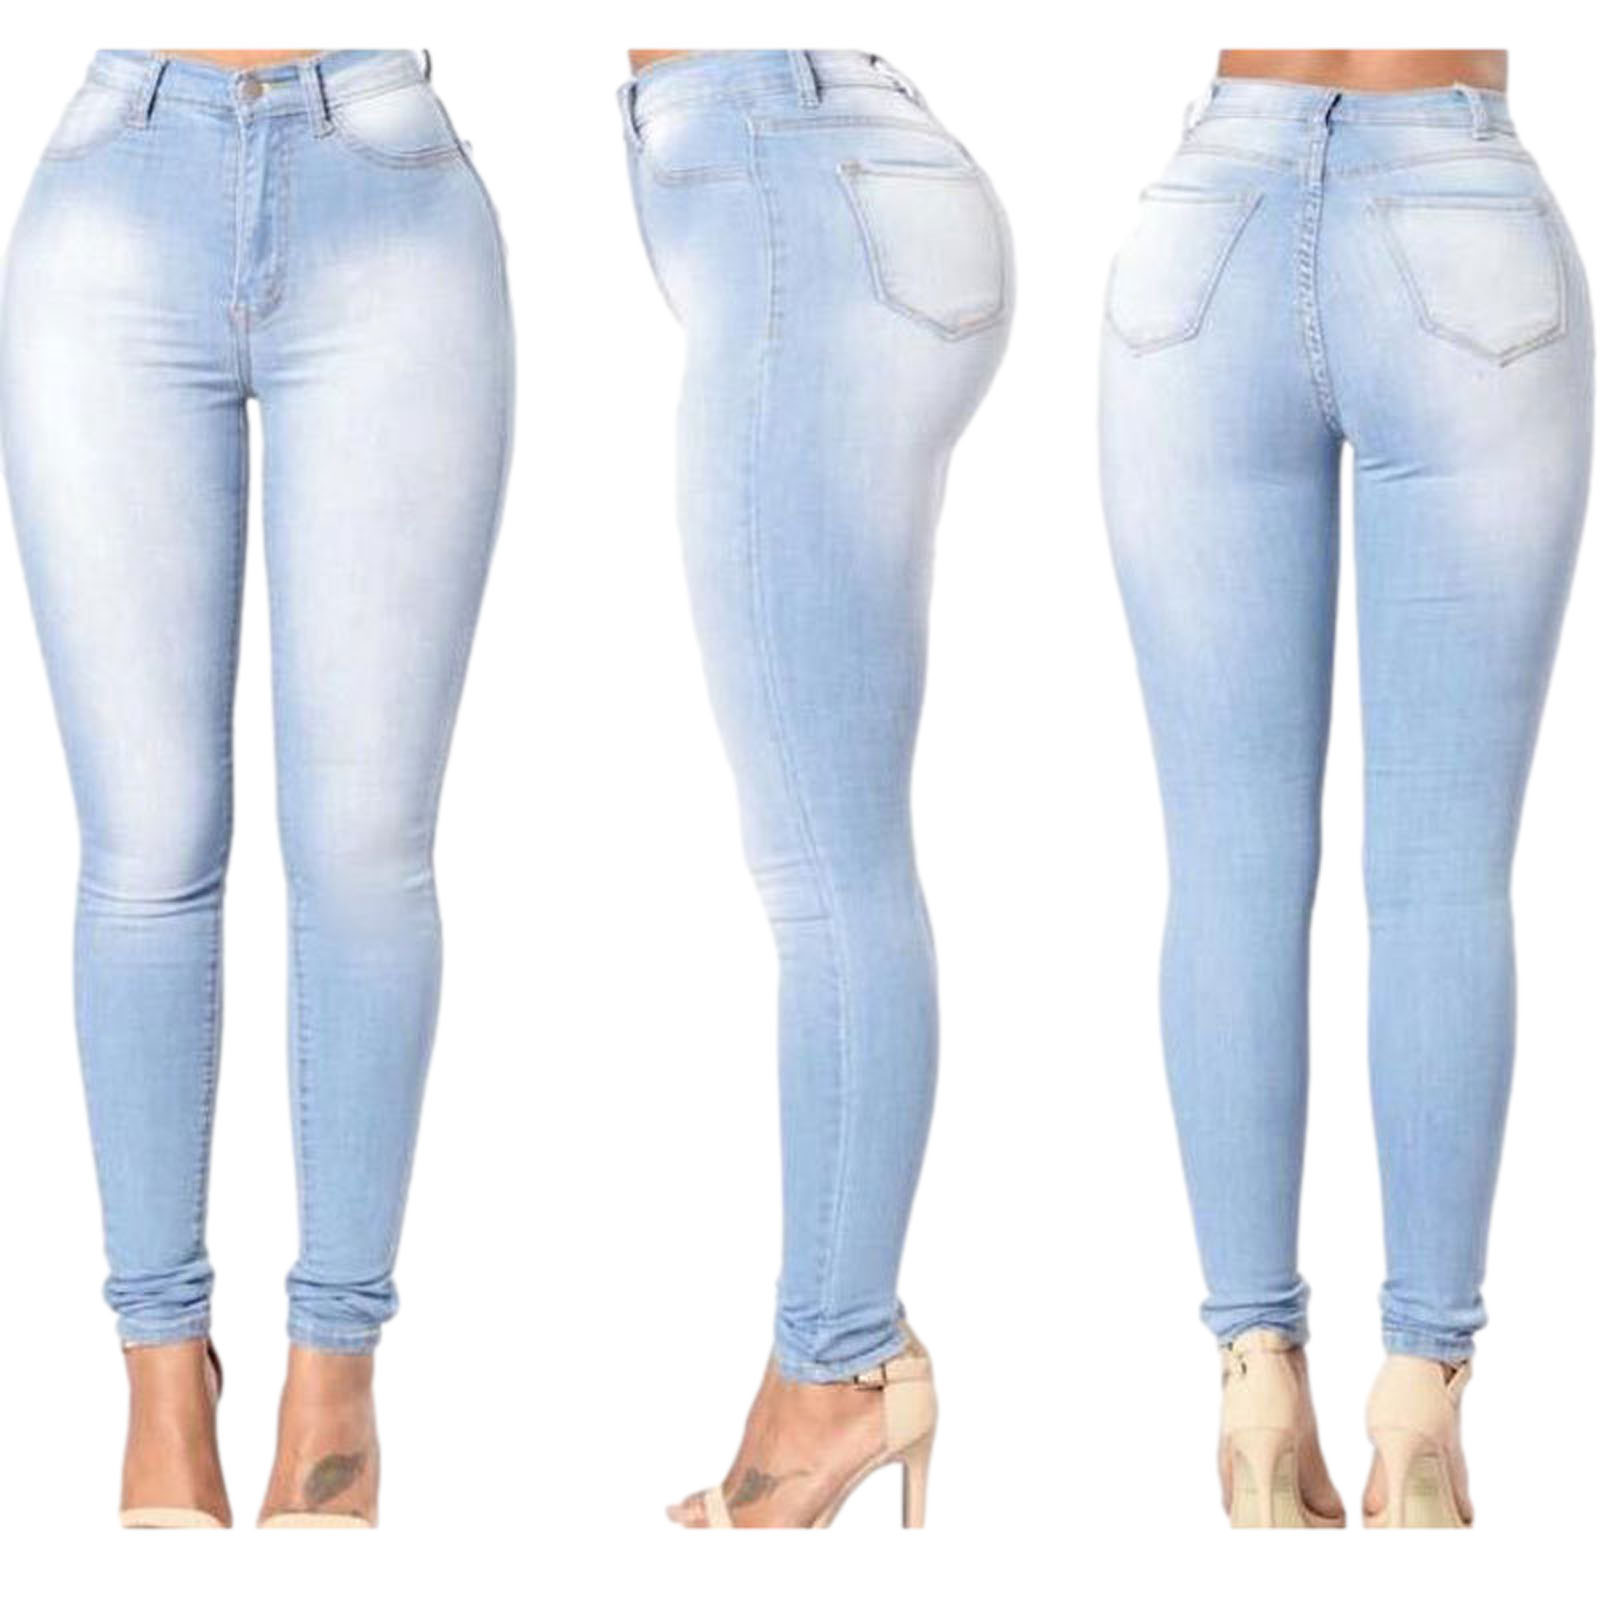 Stretch Jeans Skinny-Pants Slim High-Waist Women Denim Fashion Hot Casual Lady Newest-Arrivals